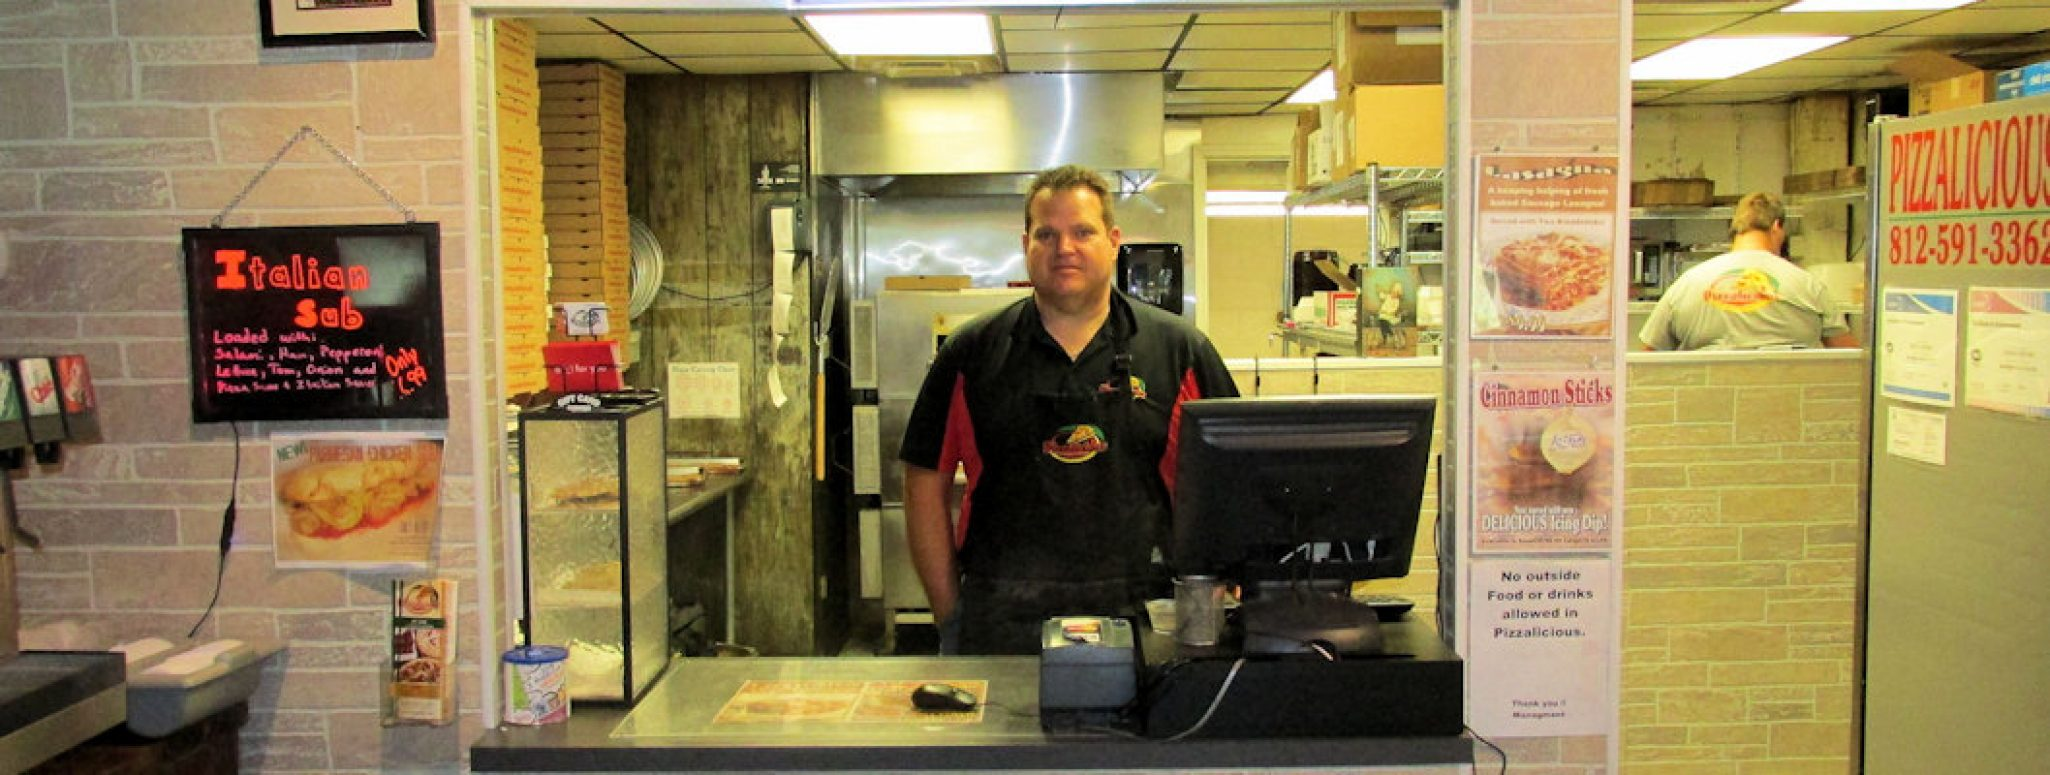 Owner William Brewer standing behind counter